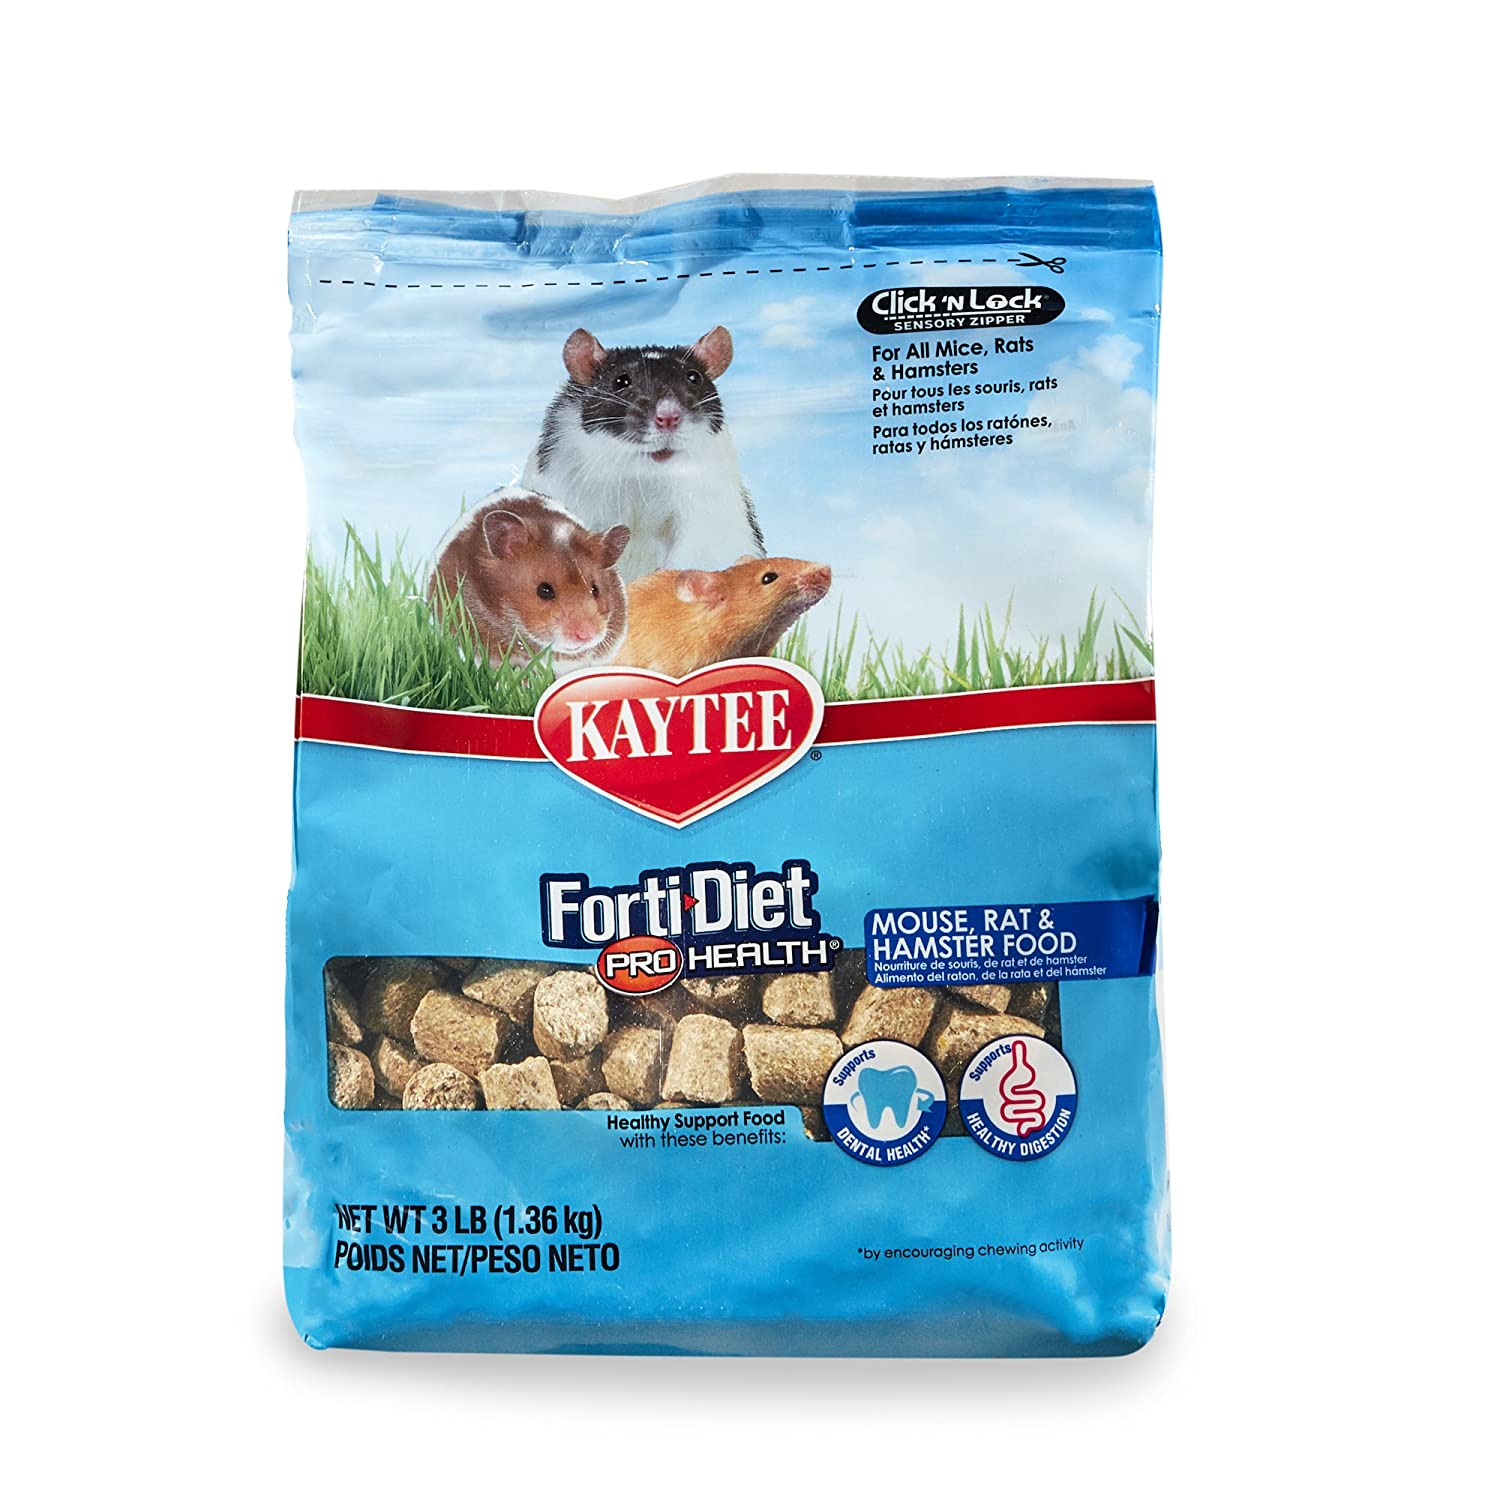 Forti-Diet Pro Health Kaytee Small Animal Food for Mouse and Pet Rats, 3-Pound 100502085